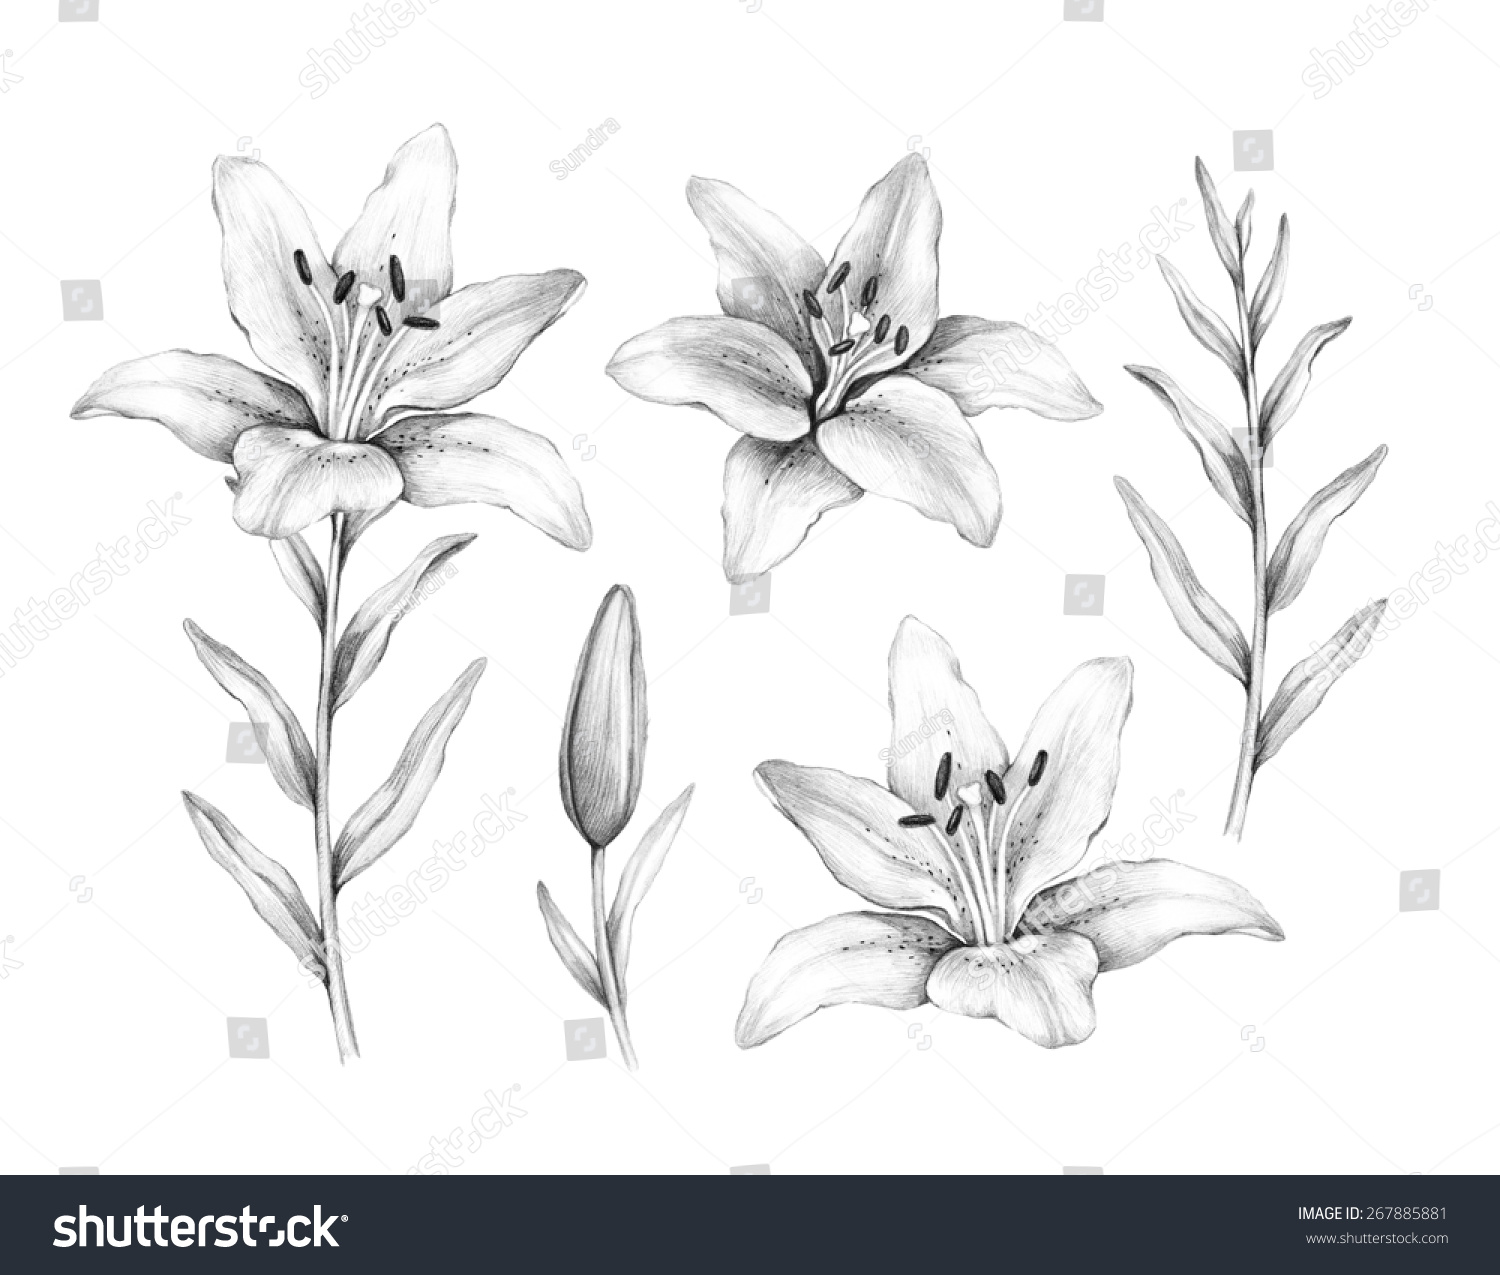 how to draw a realistic water lily